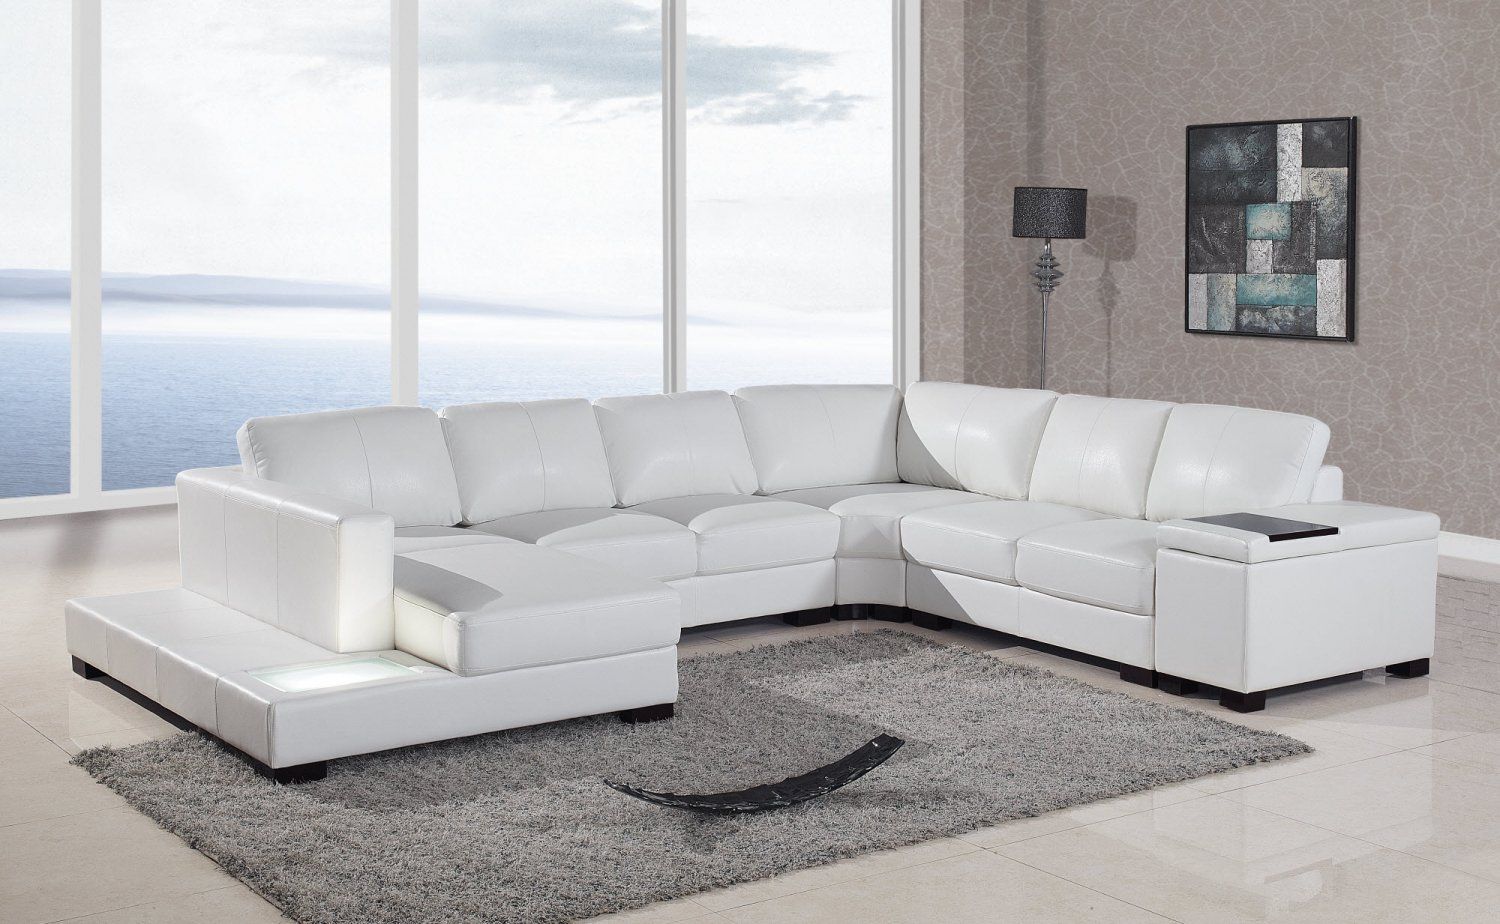 T35 Style Italian Bonded Leather Modern Living Room